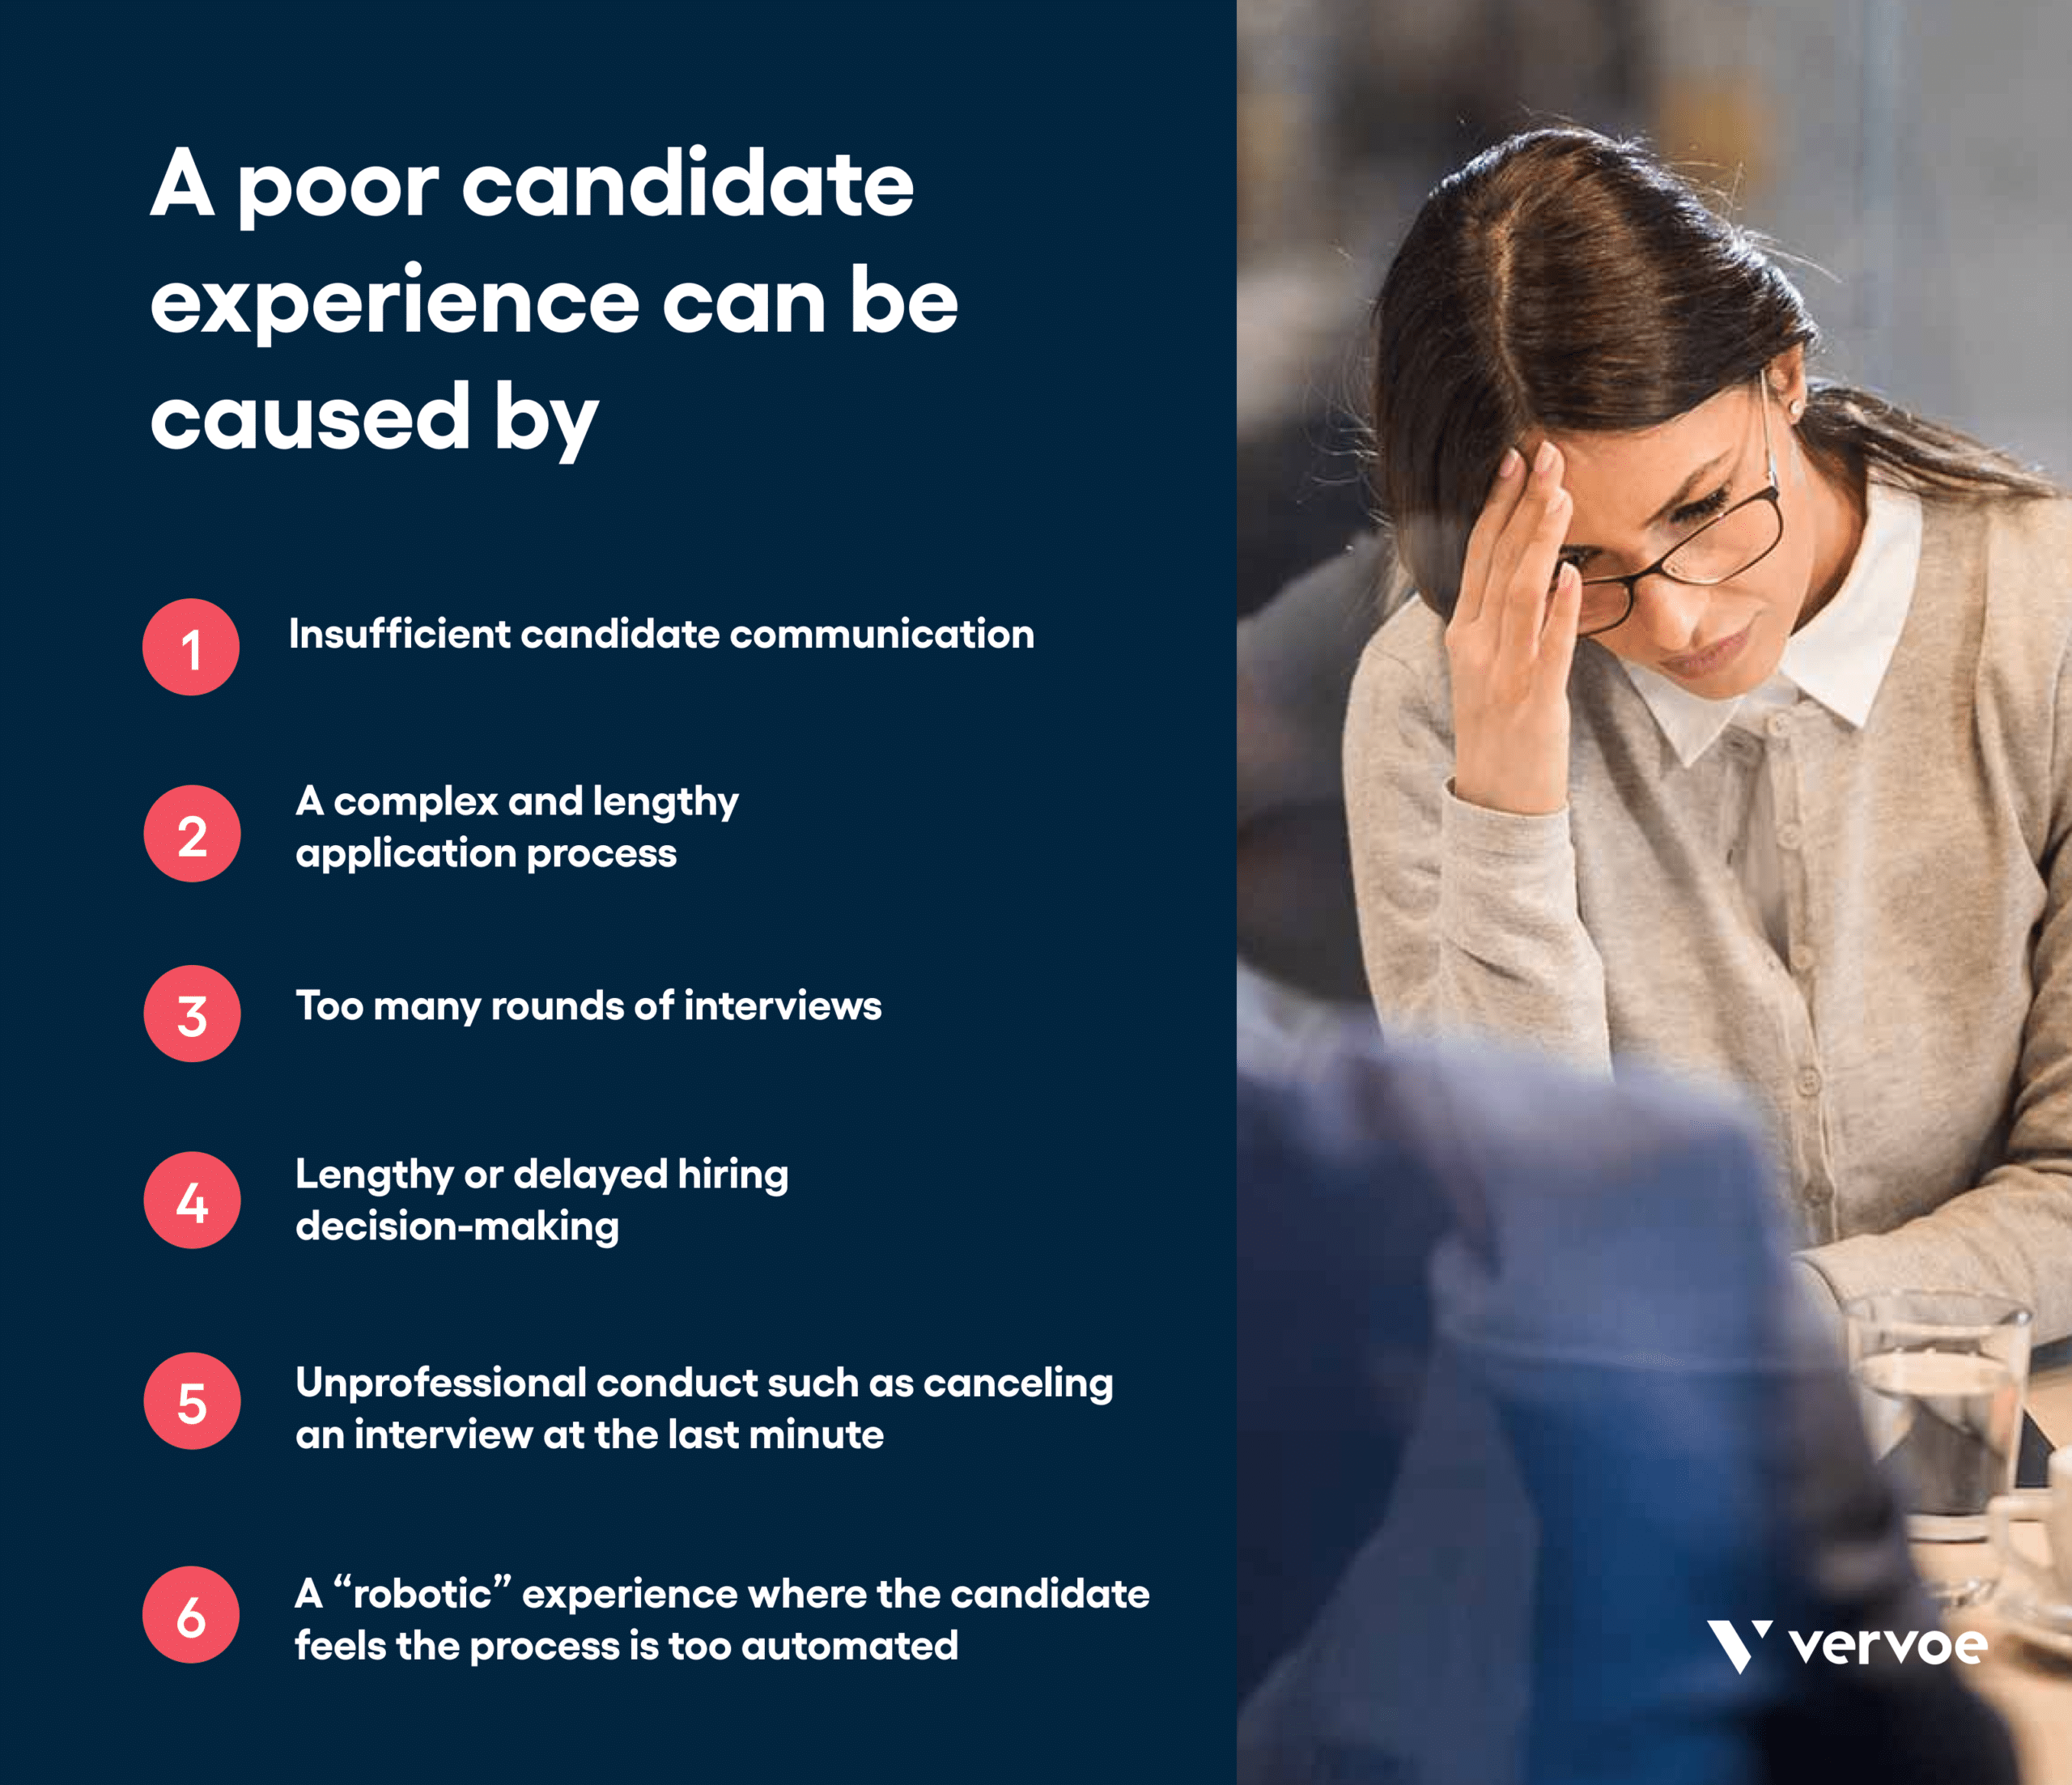 Infographic showing what can cause a poor candidate experience